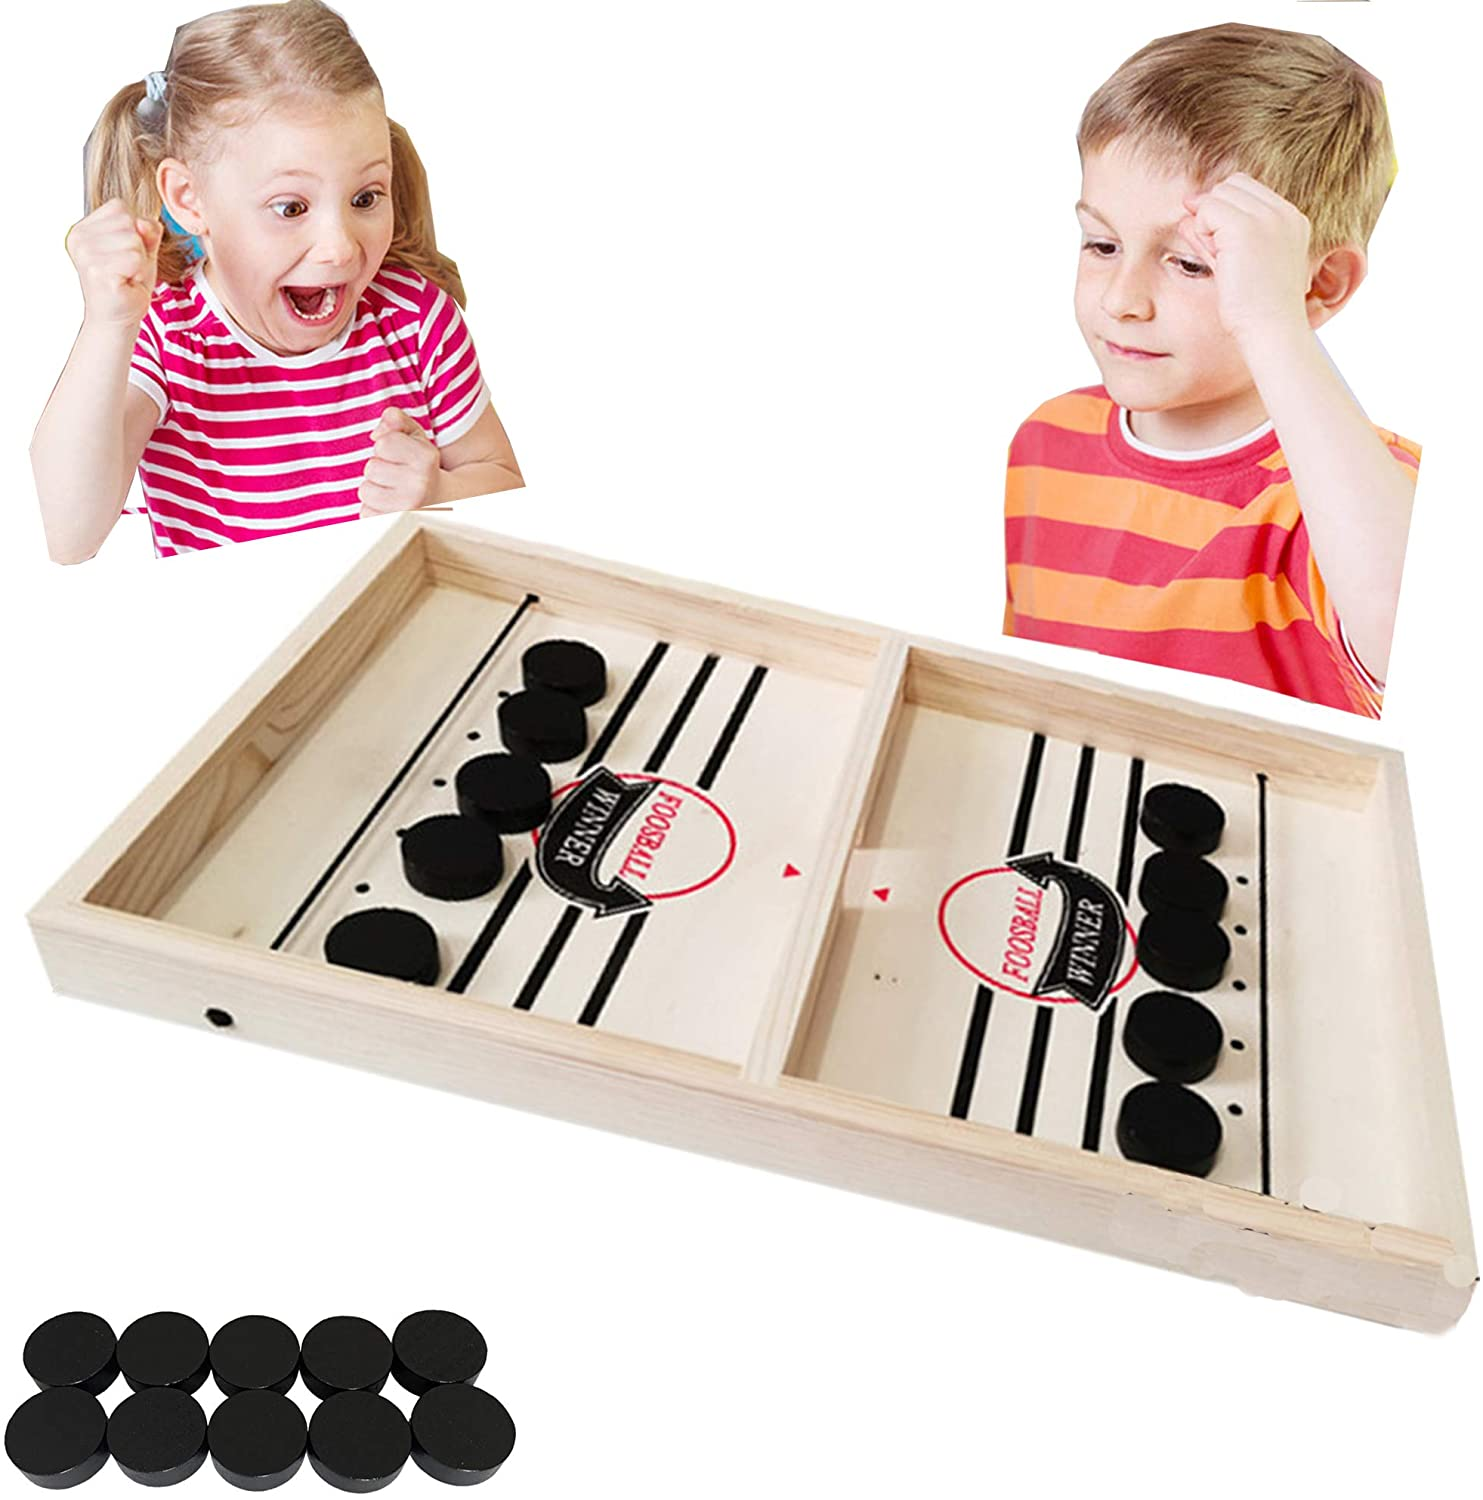 Fast Sling Puck Game Desktop Battle 2 in 1 Ball air Hockey Game Super Winner Board Games Foosball Slingshot Table Game Wood Interactive Chess Toy for Kids Family